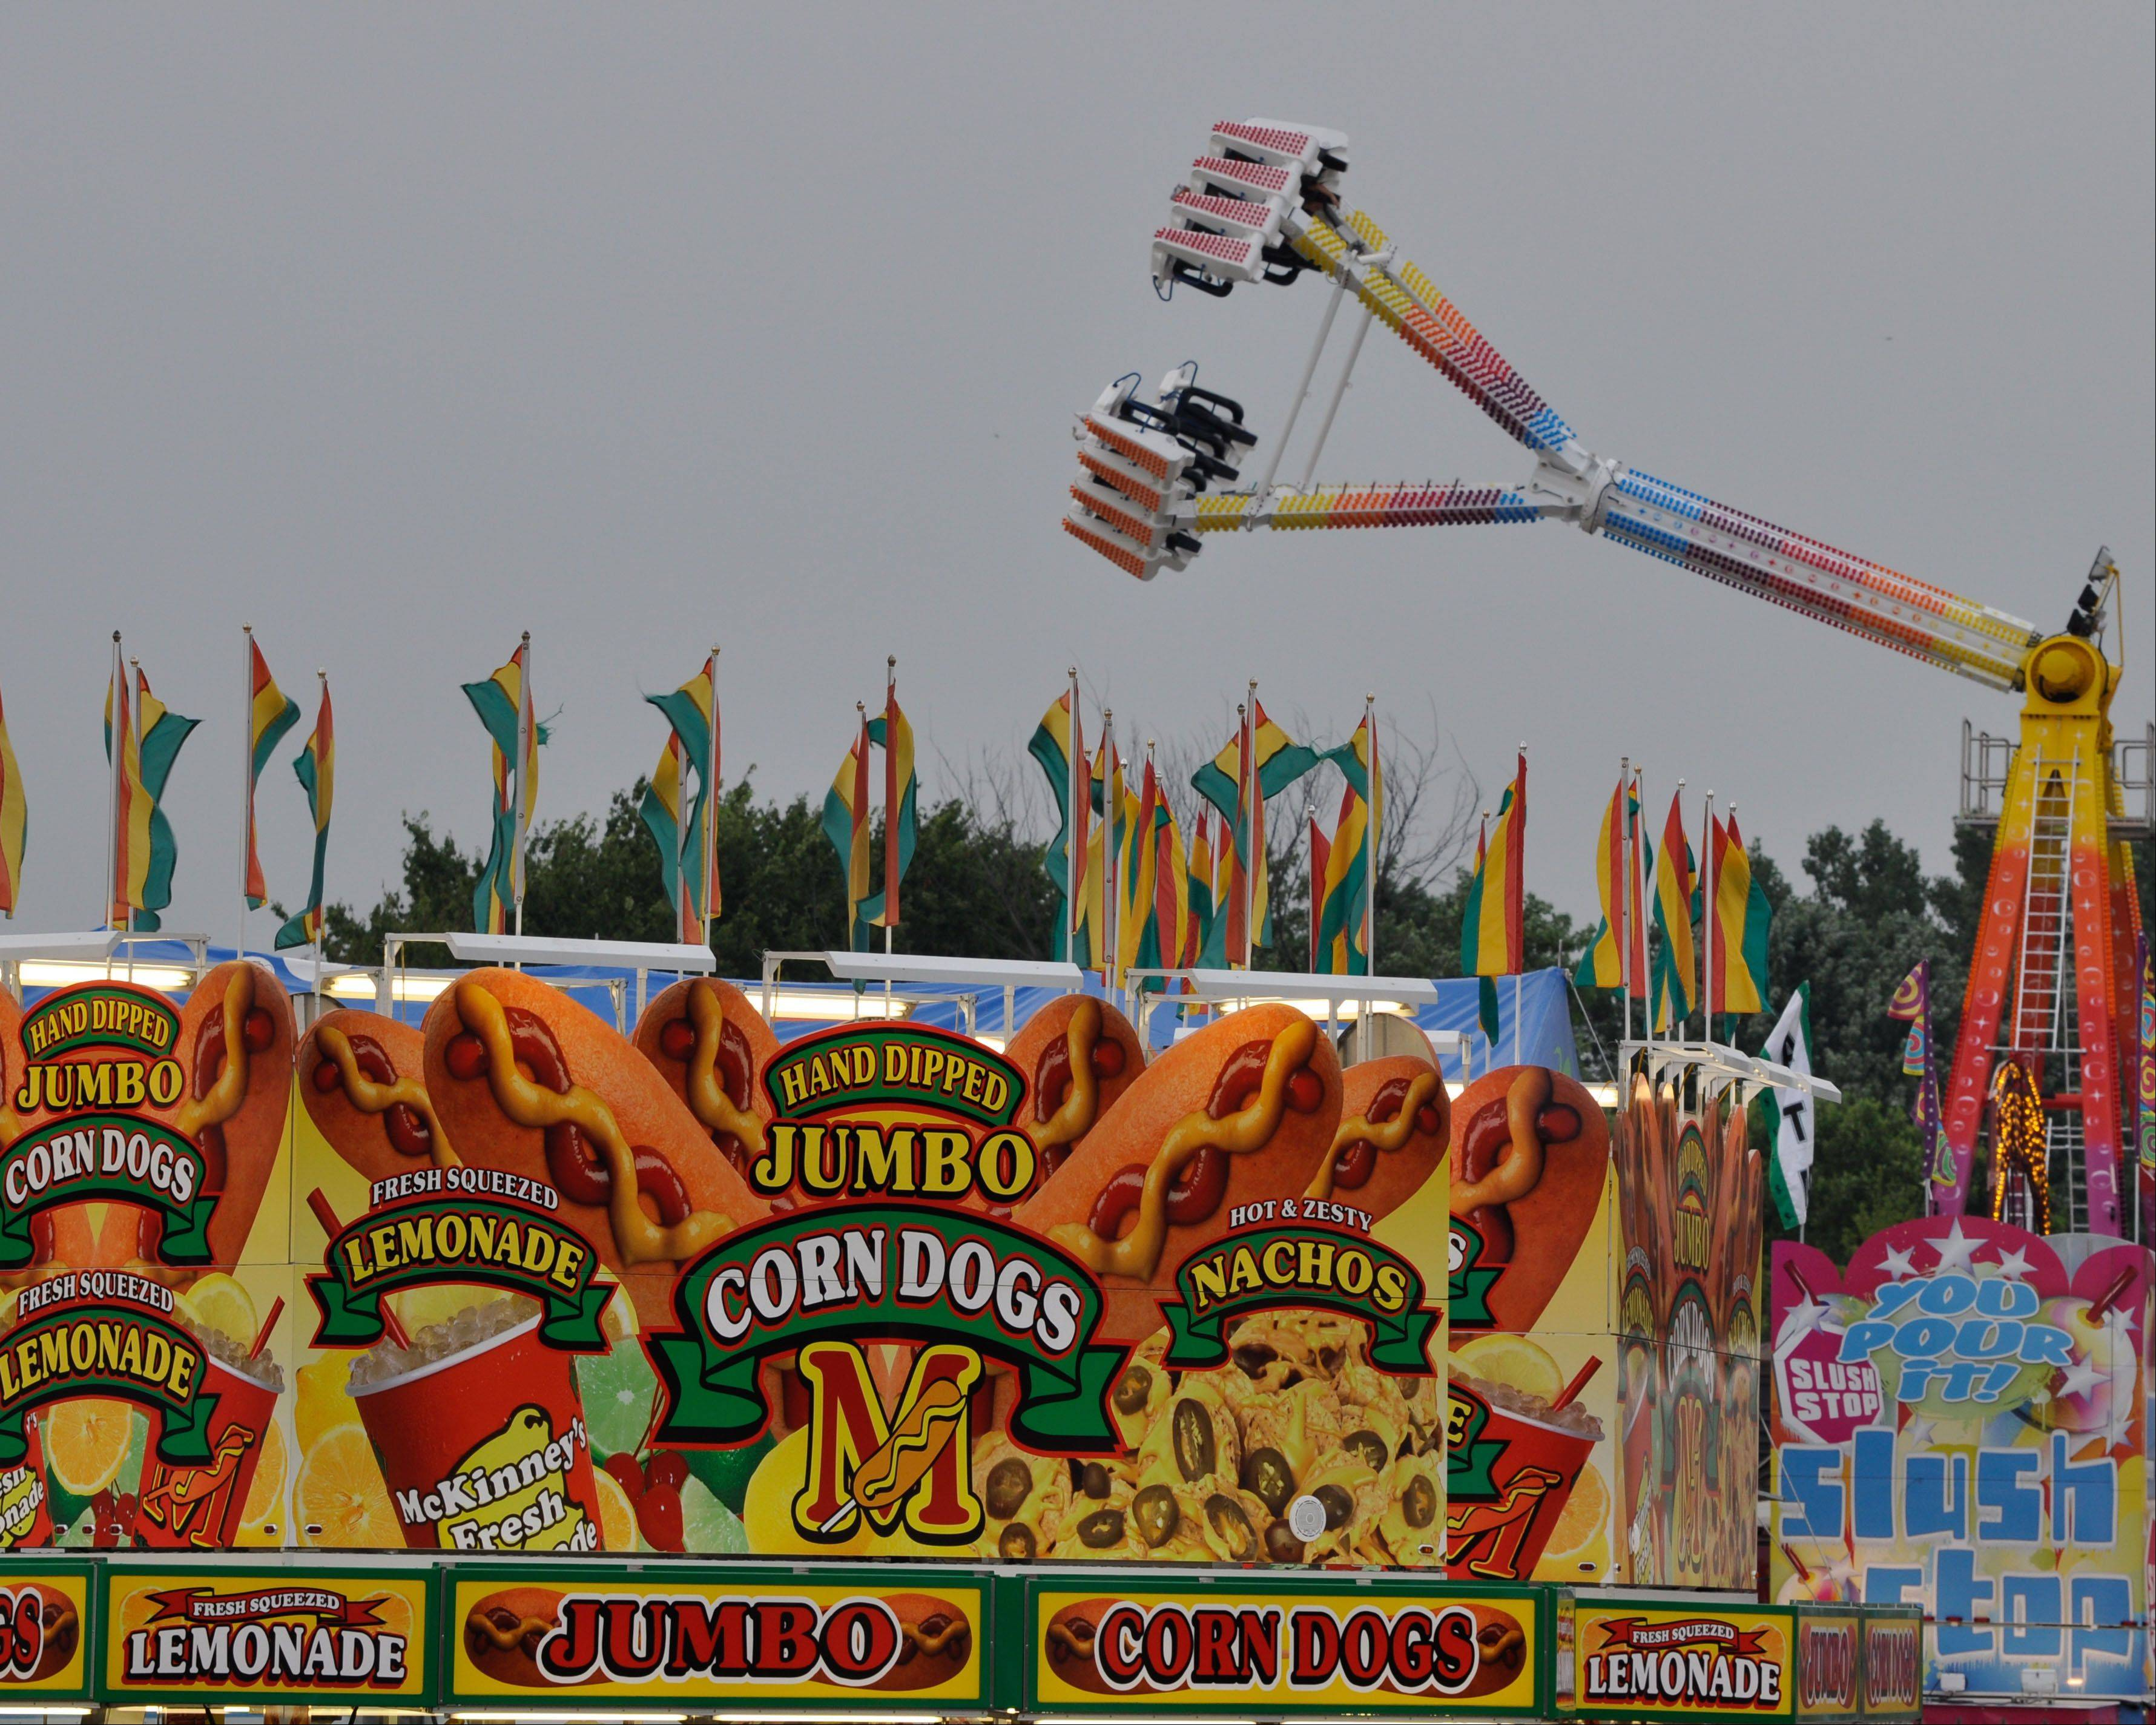 Courtesy of Greg PerishoGreg Perisho of Winfield placed second in the DuPage County Fair Photography Shoot-Out with this image of the carnival.